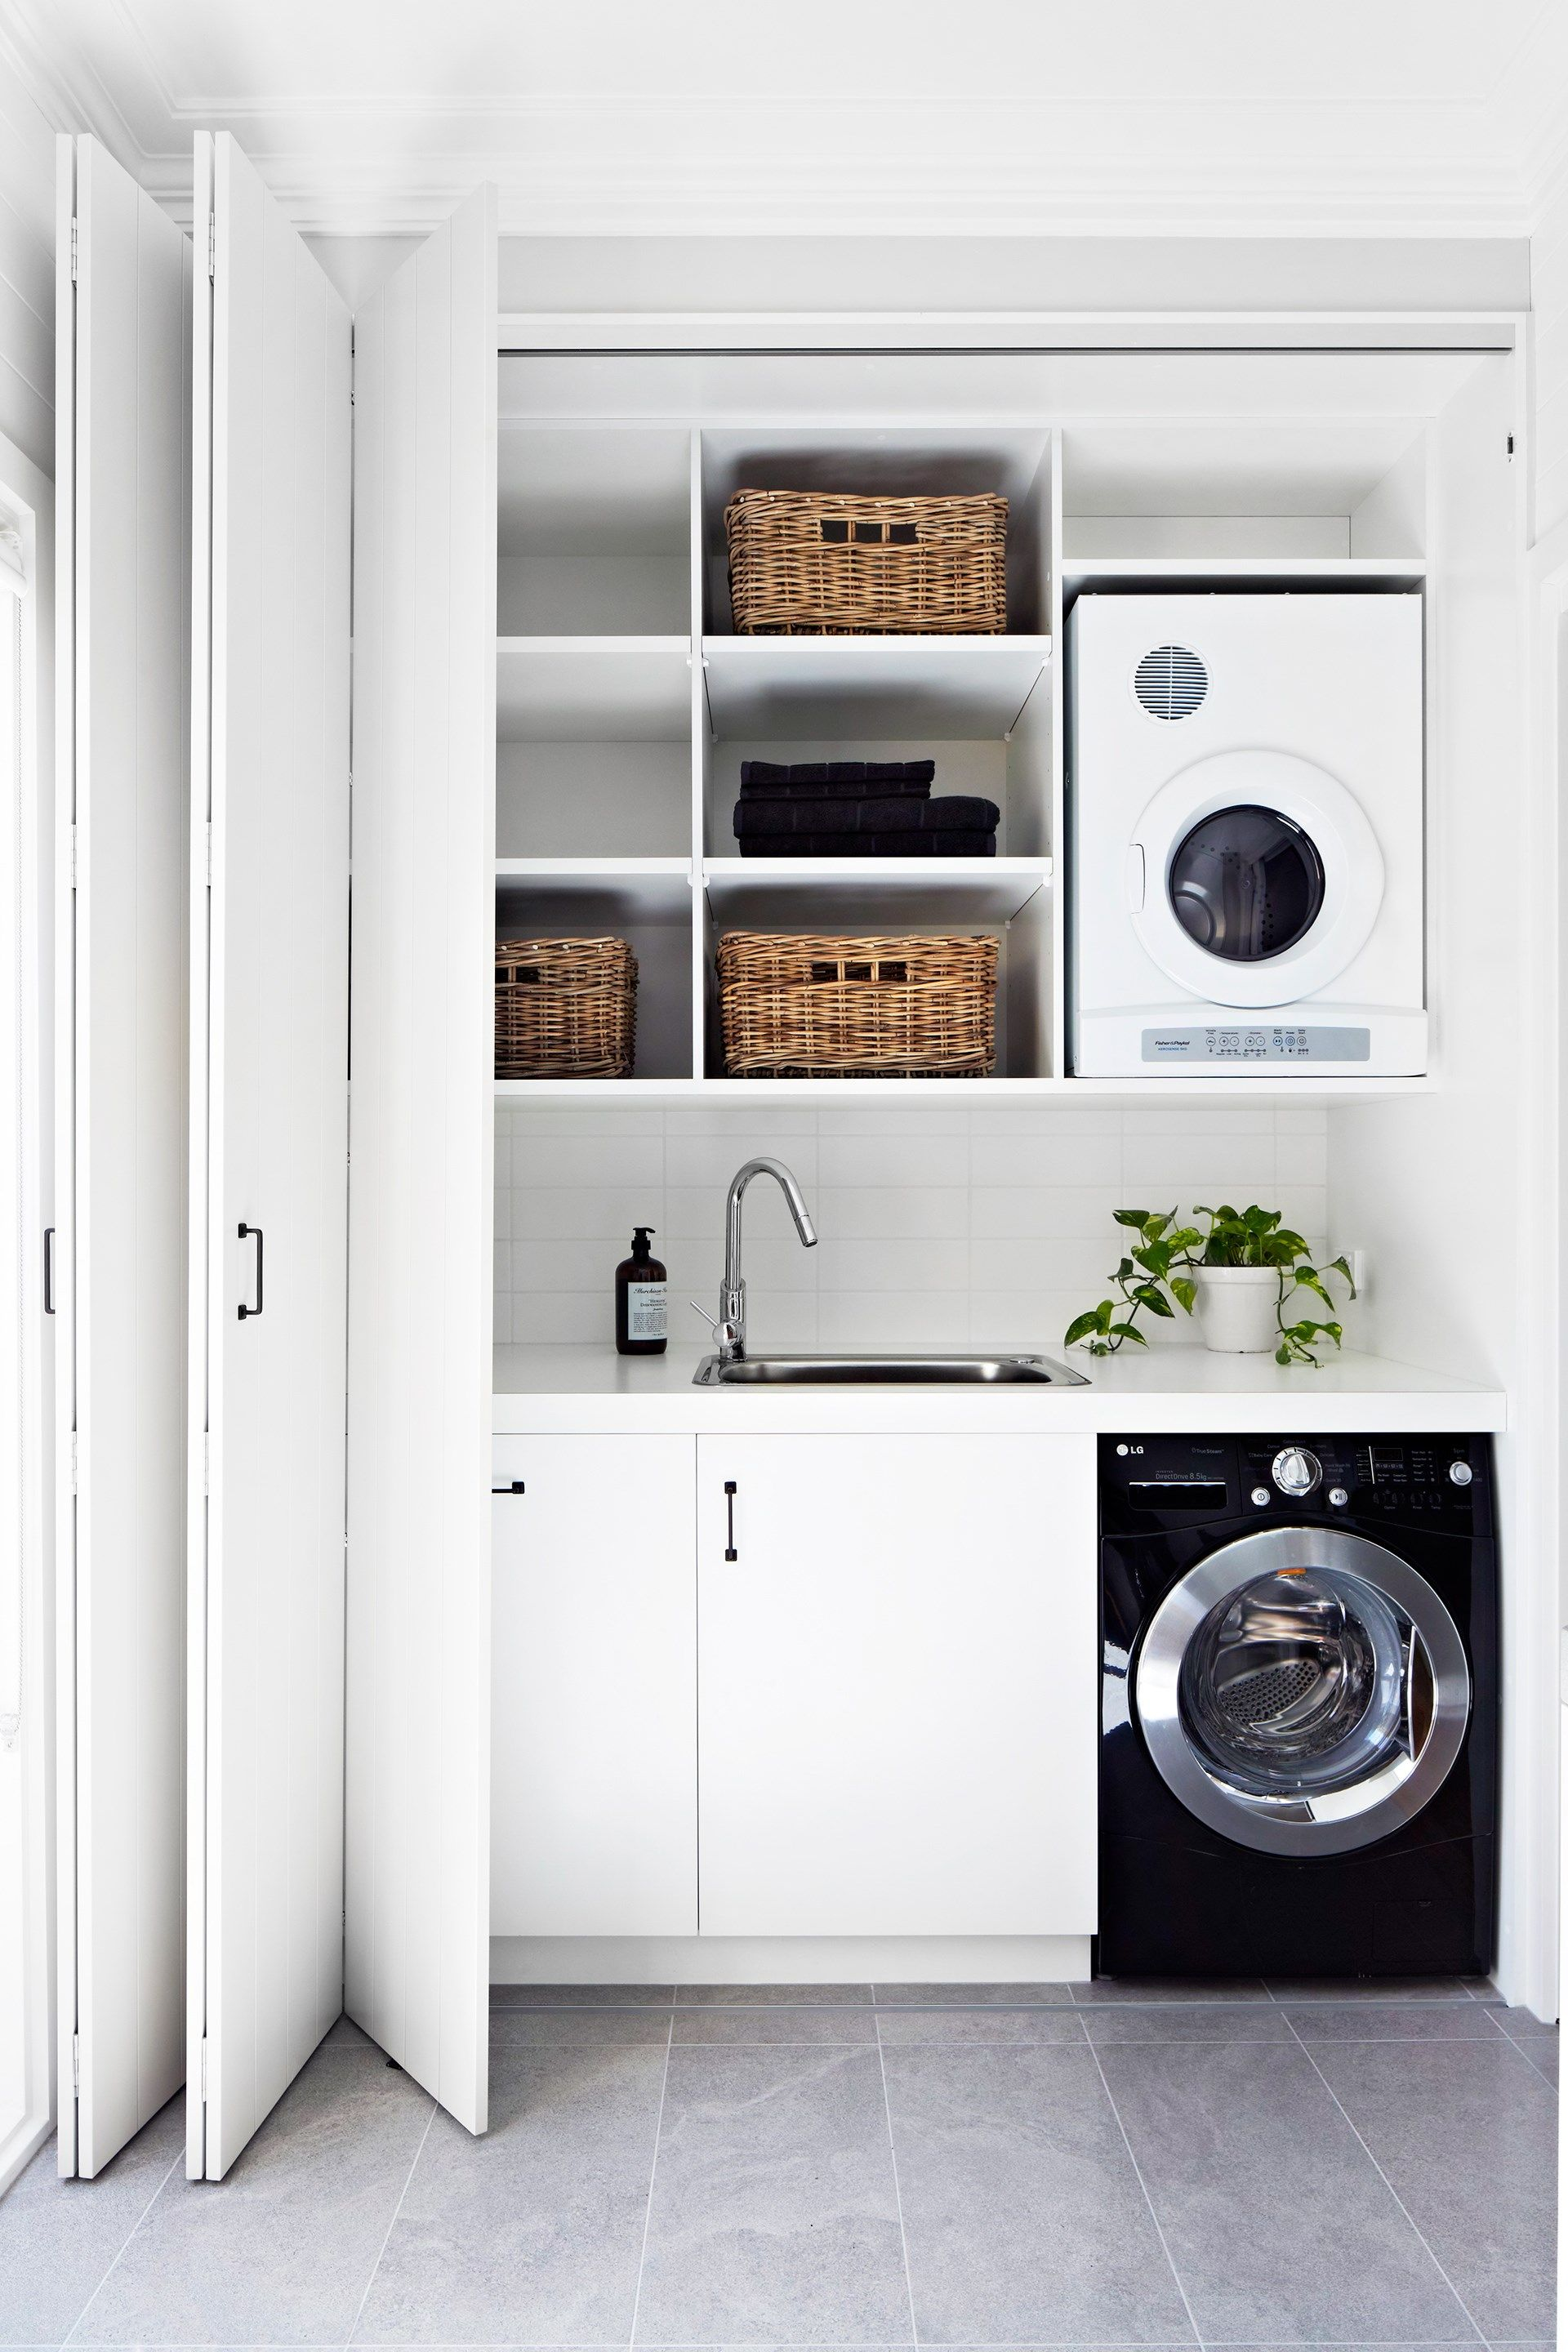 8 Stylish Solutions For Small Spaces With Images Laundry